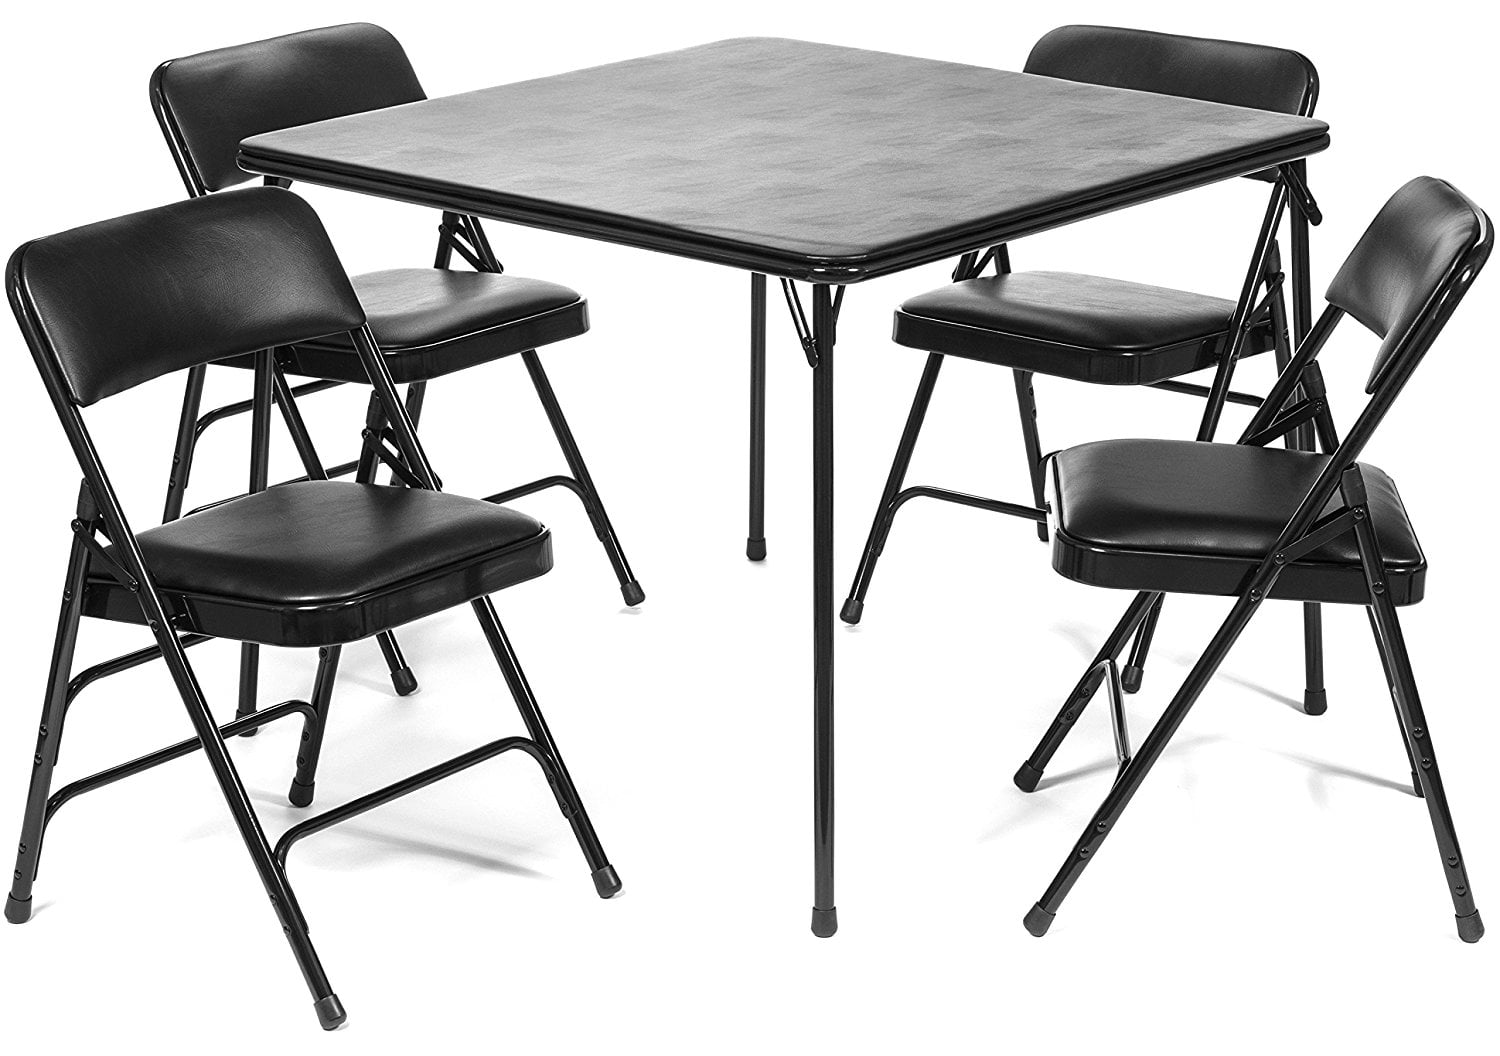 Xl Series Folding Card Table And Triple Braced Vinyl Padded Chair Set Commercial Quality Beige